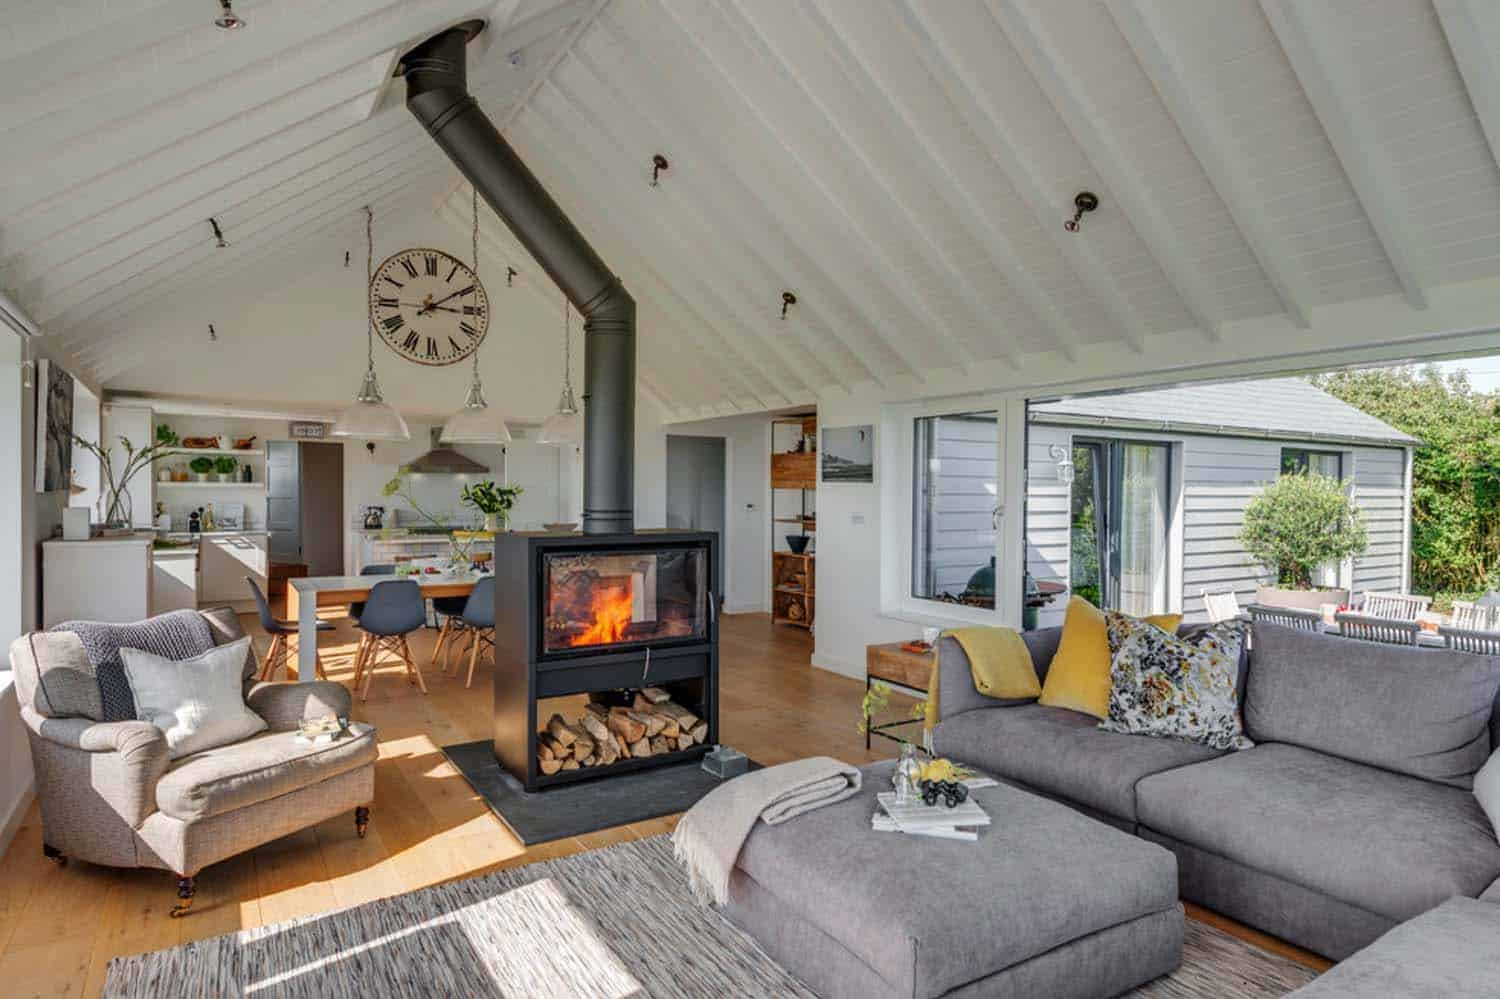 seaside-bungalow-renovation-woodford-architecture-05-1-kindesign